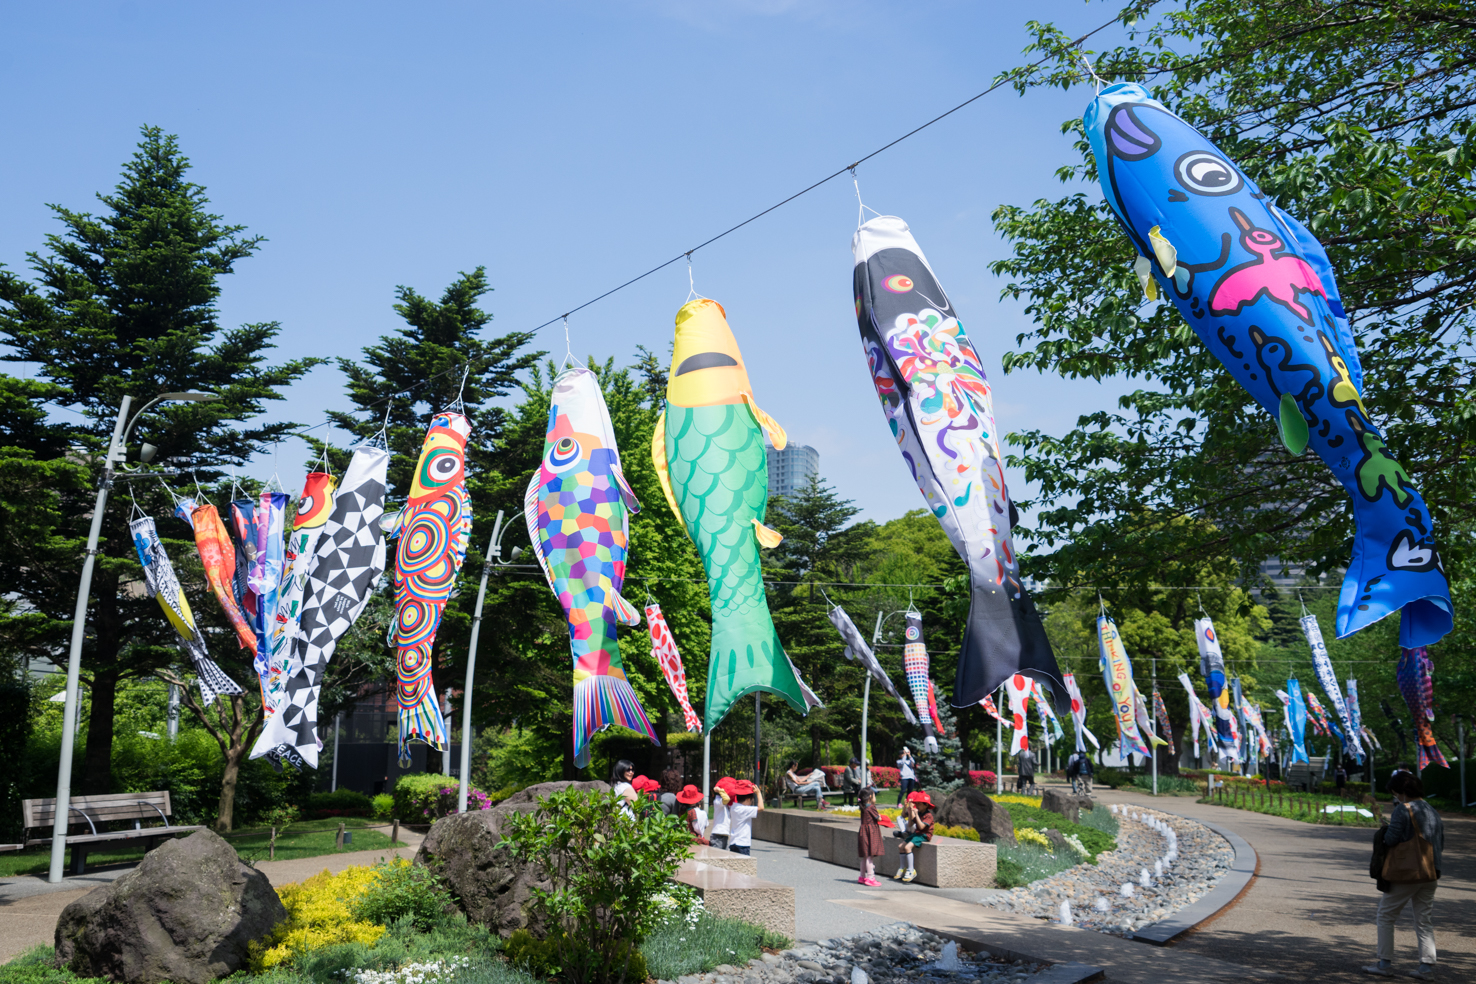 MIDTOWN OPEN THE PARK 2017 koinobori